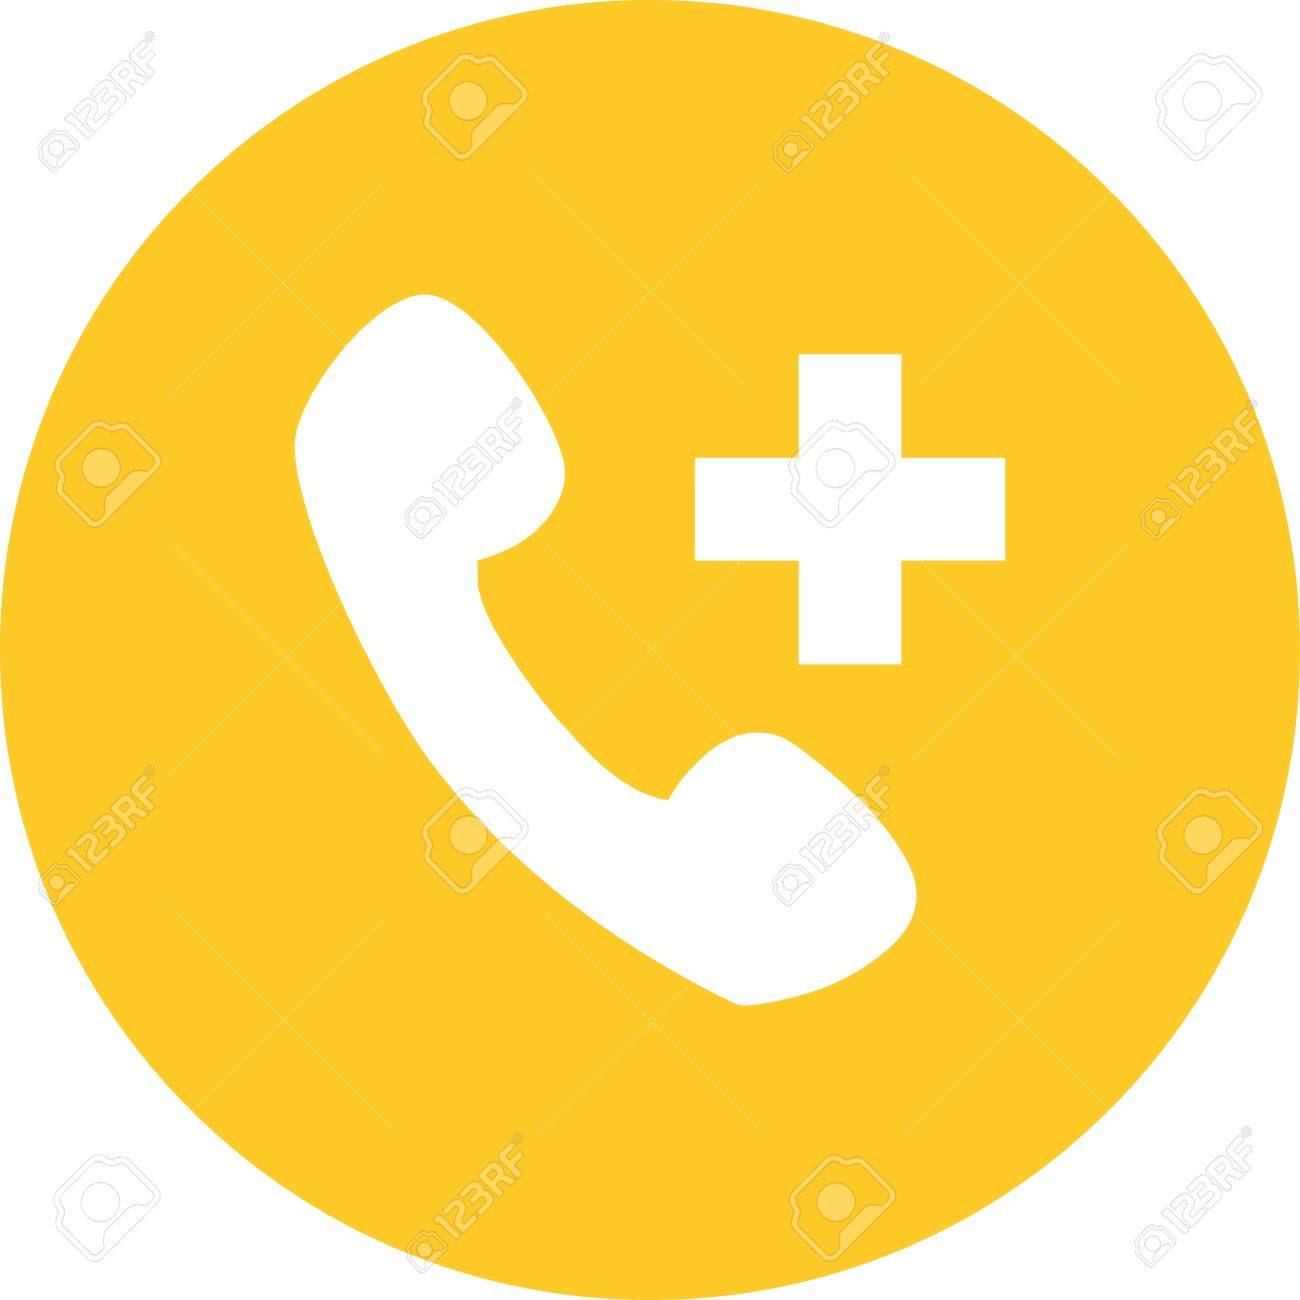 help line phone telephone icon vector image can also be used rh 123rf com telephone icon ai vector free icône téléphone vectoriel